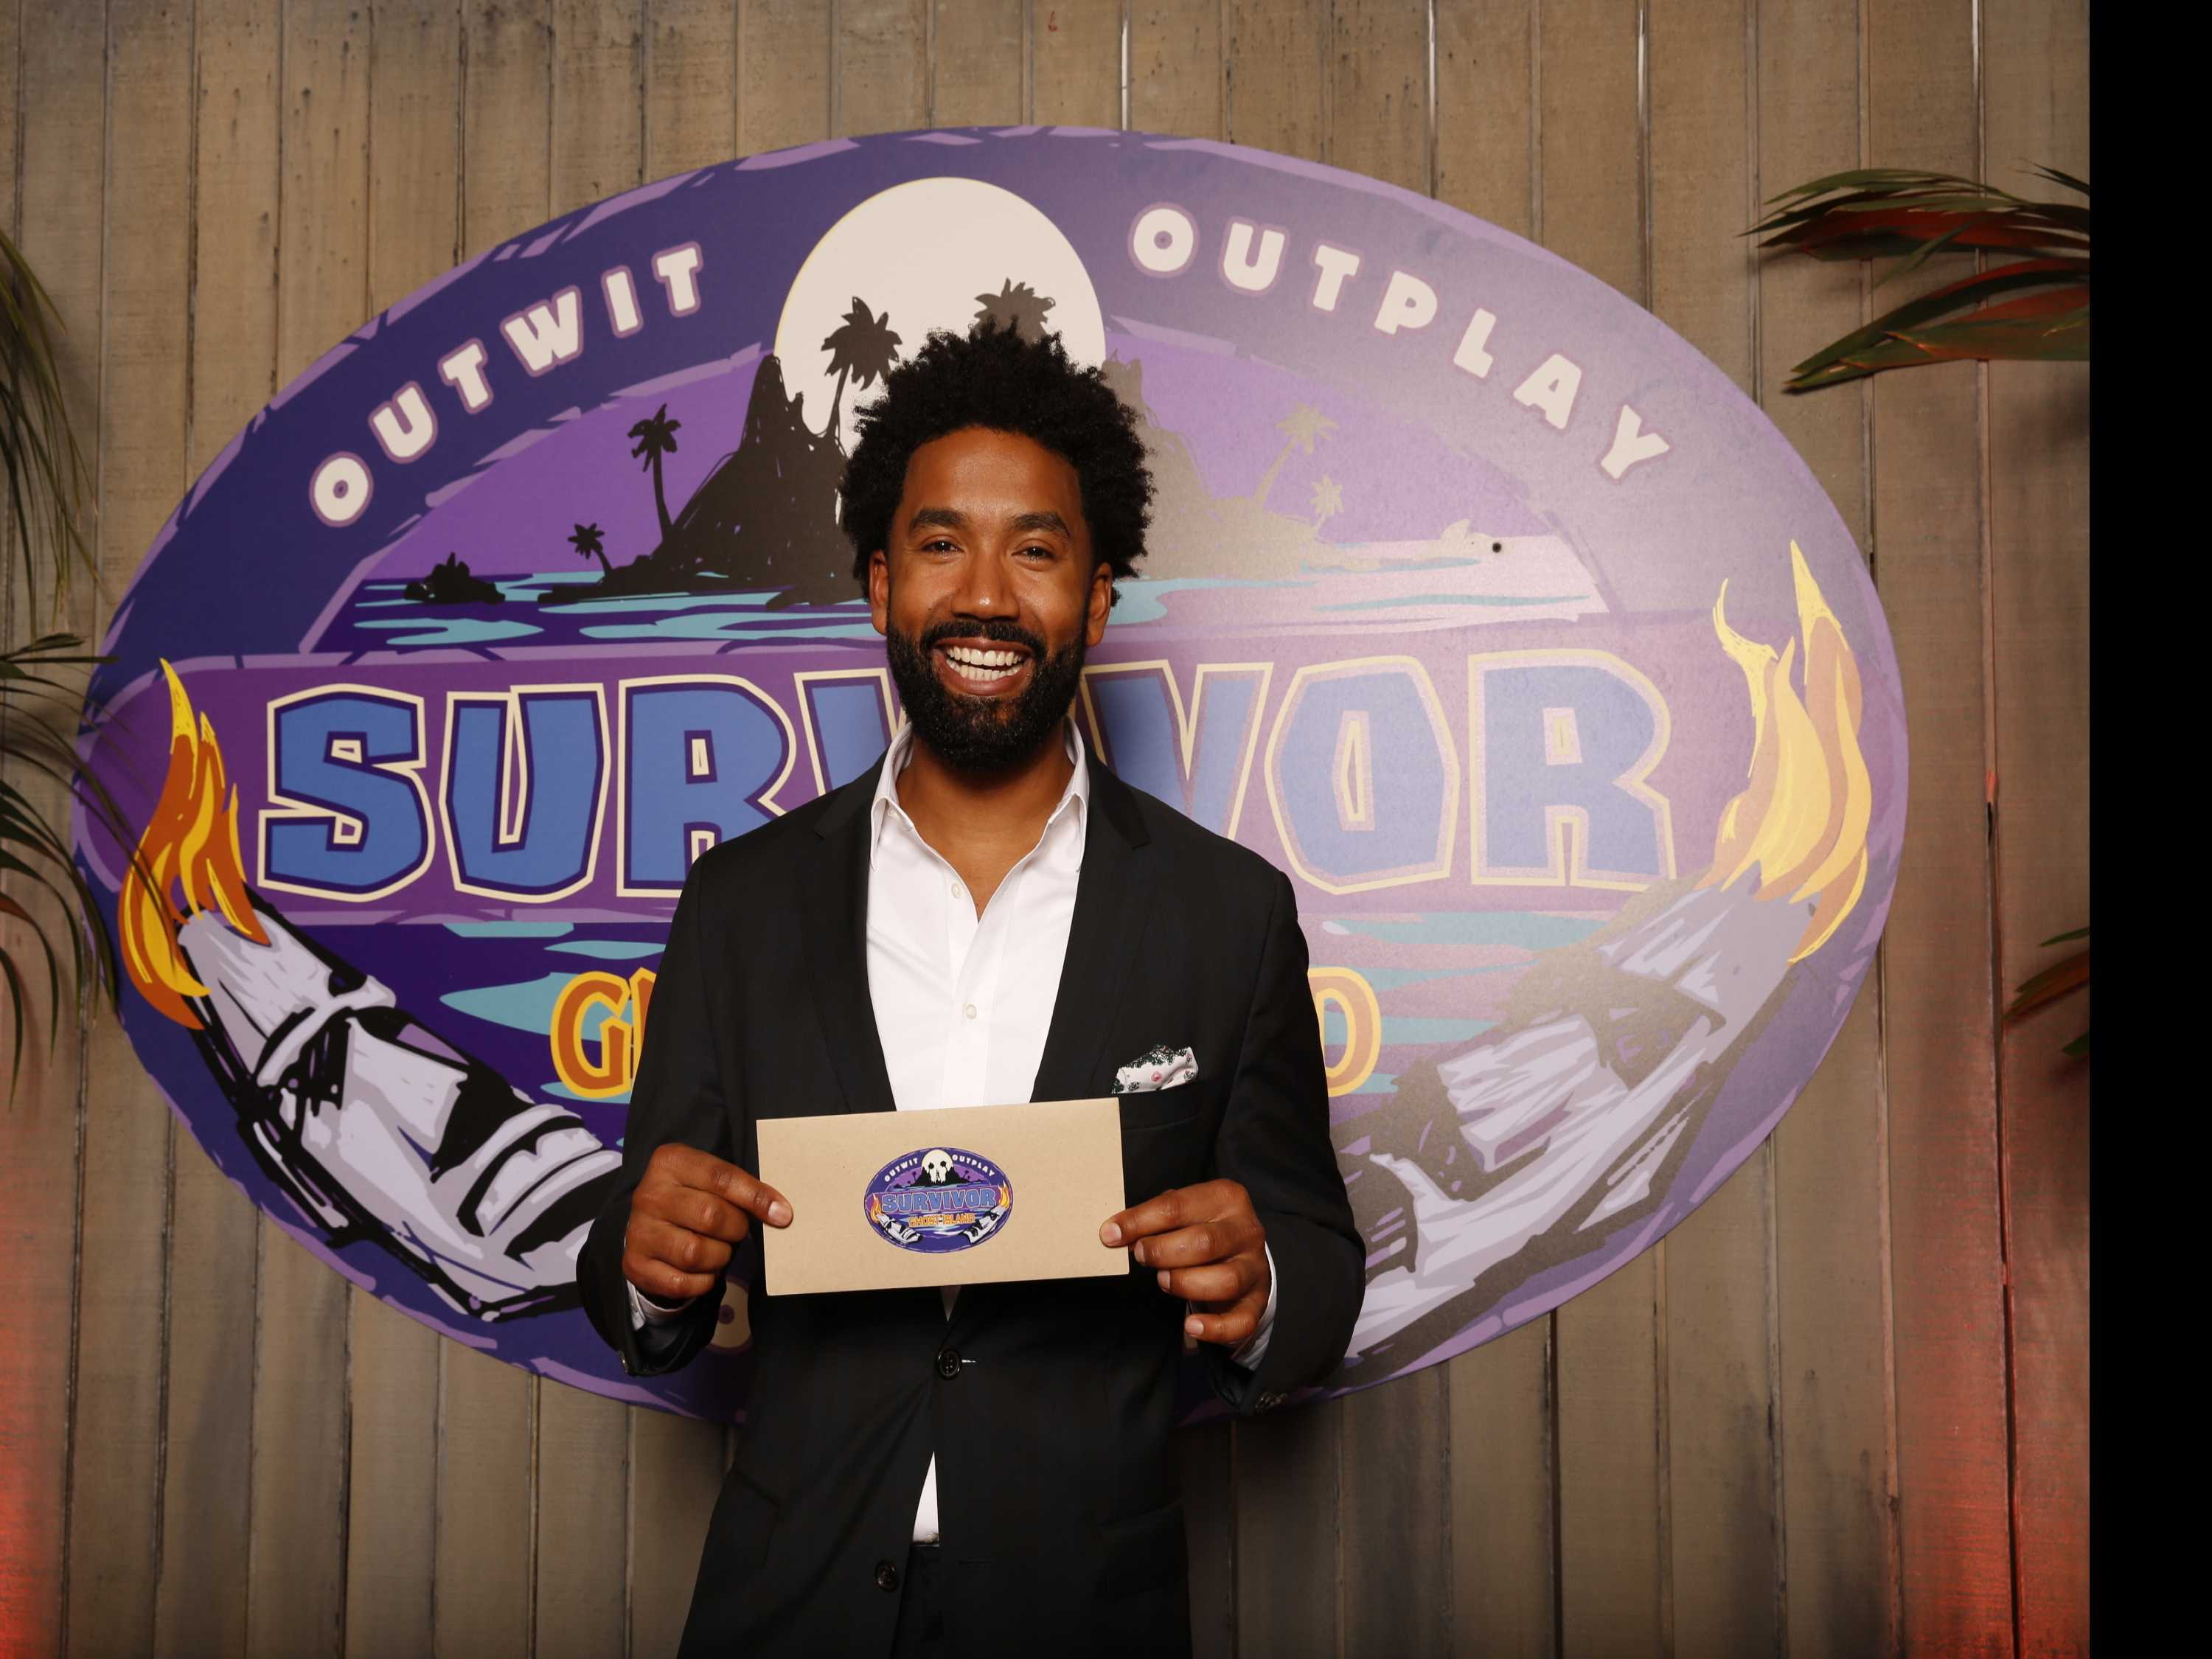 'Survivor' Final Vote Ends in Tie, Philadelphia Man Wins